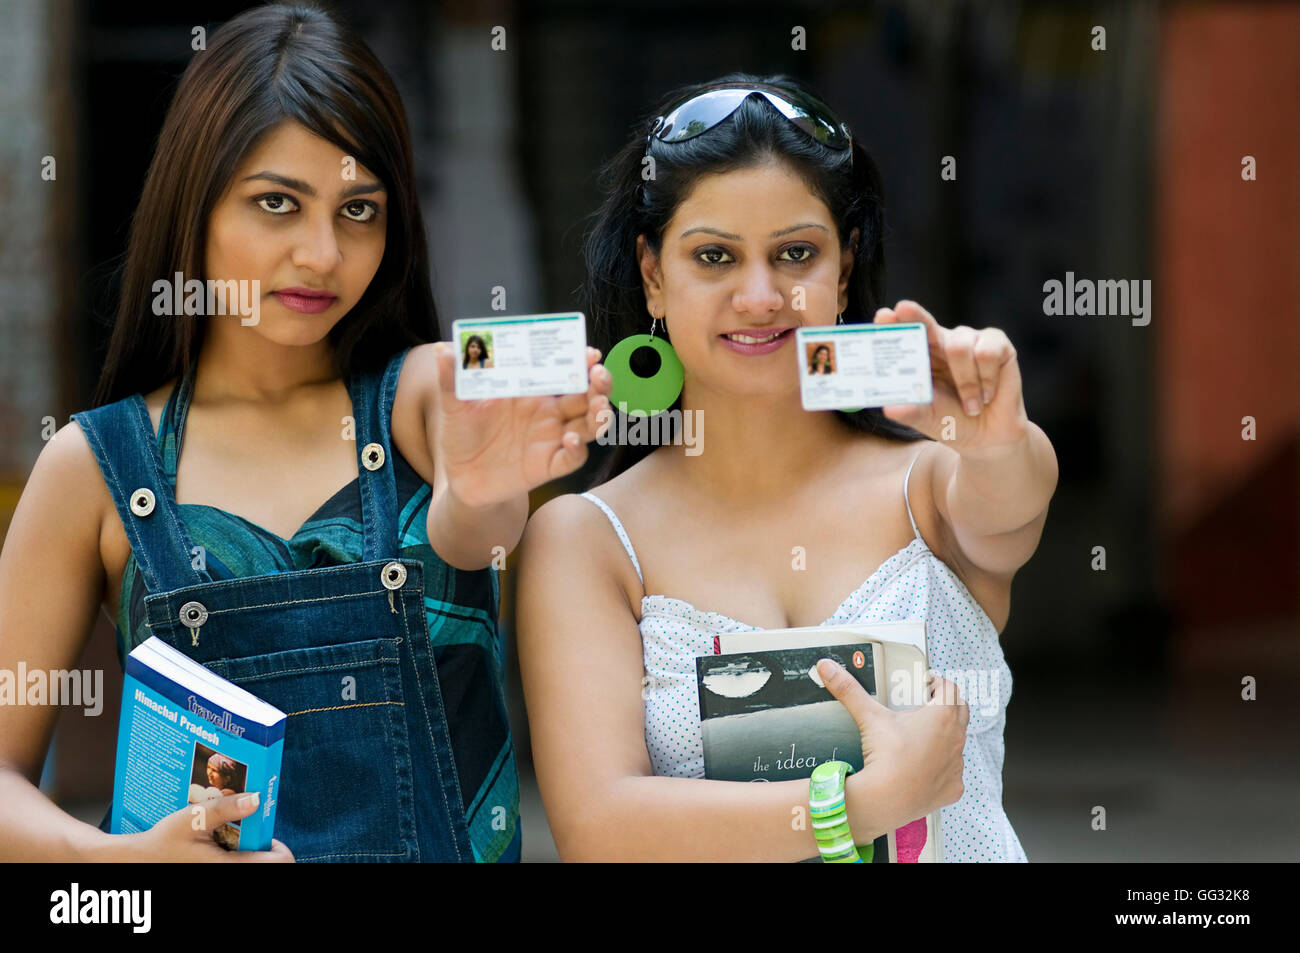 College students with identity cards - Stock Image